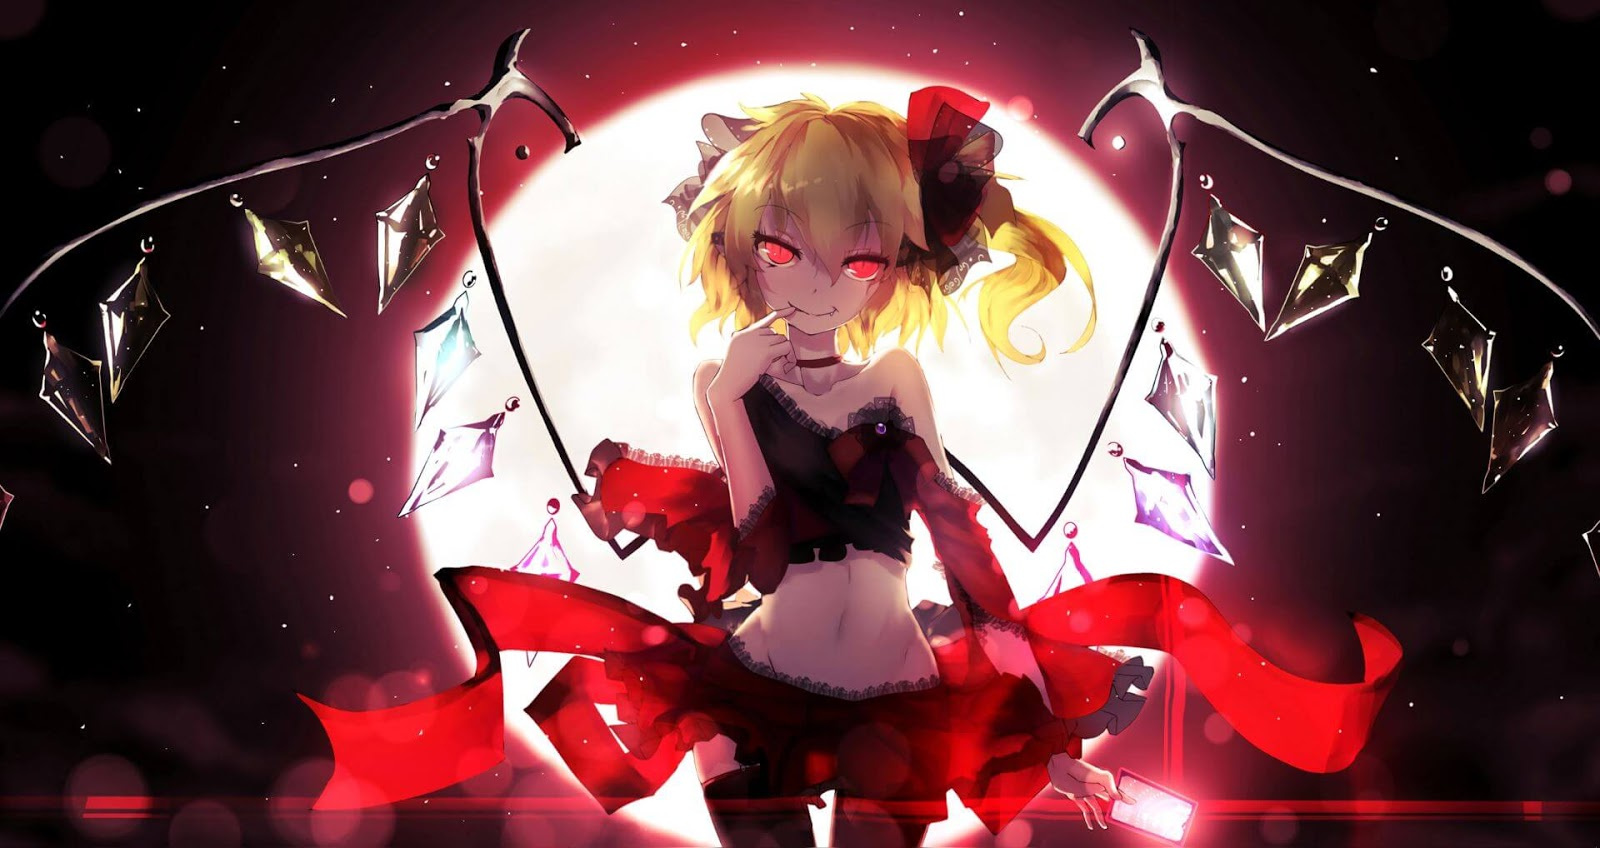 Flandre Scarlet 悪魔の妹 [東方] [Wallpaper Engine Anime]